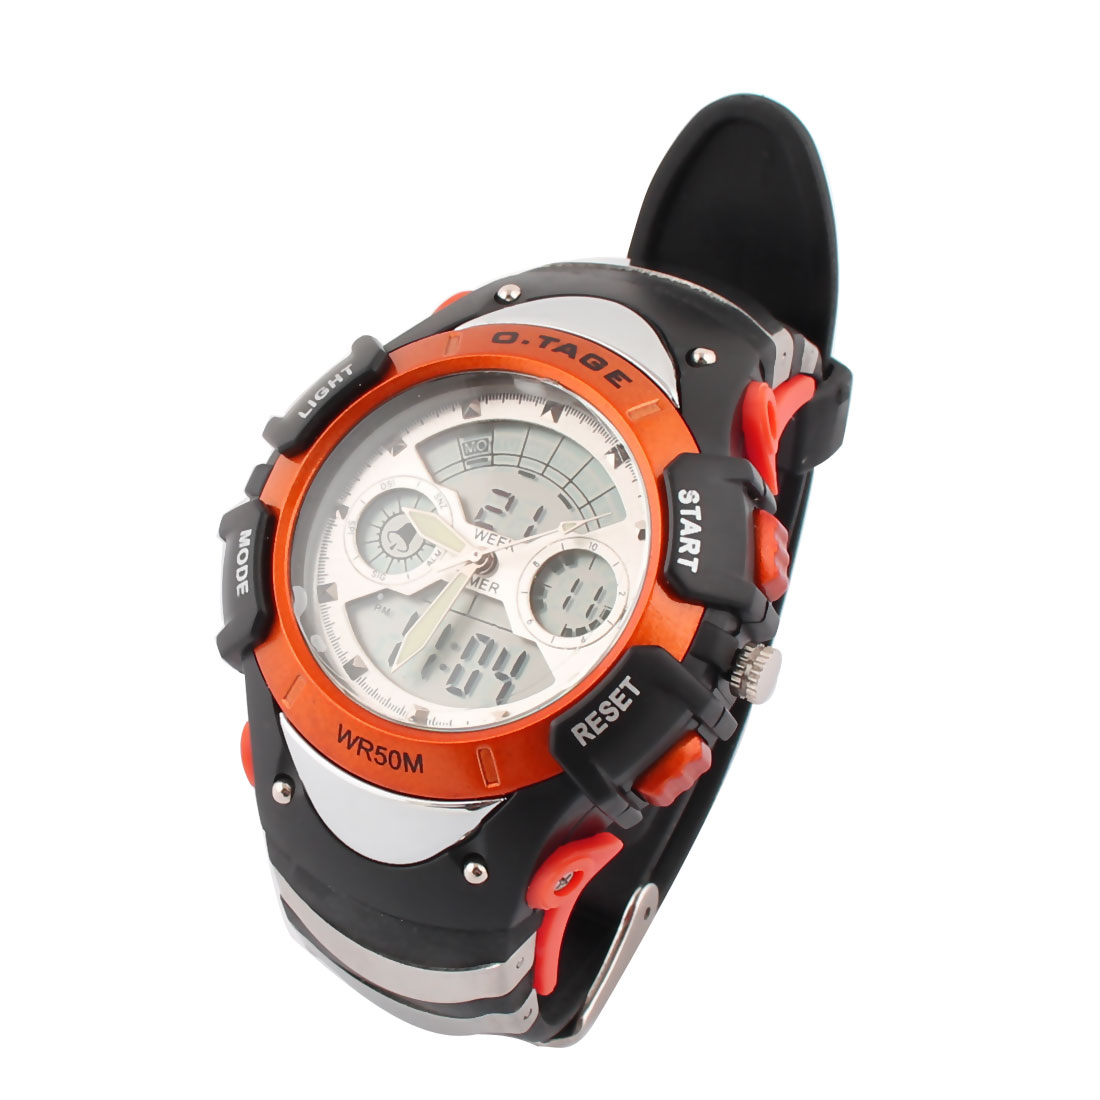 Outdoor Sports Water Resistant Luminous Peak Climbing Watch Black Orange